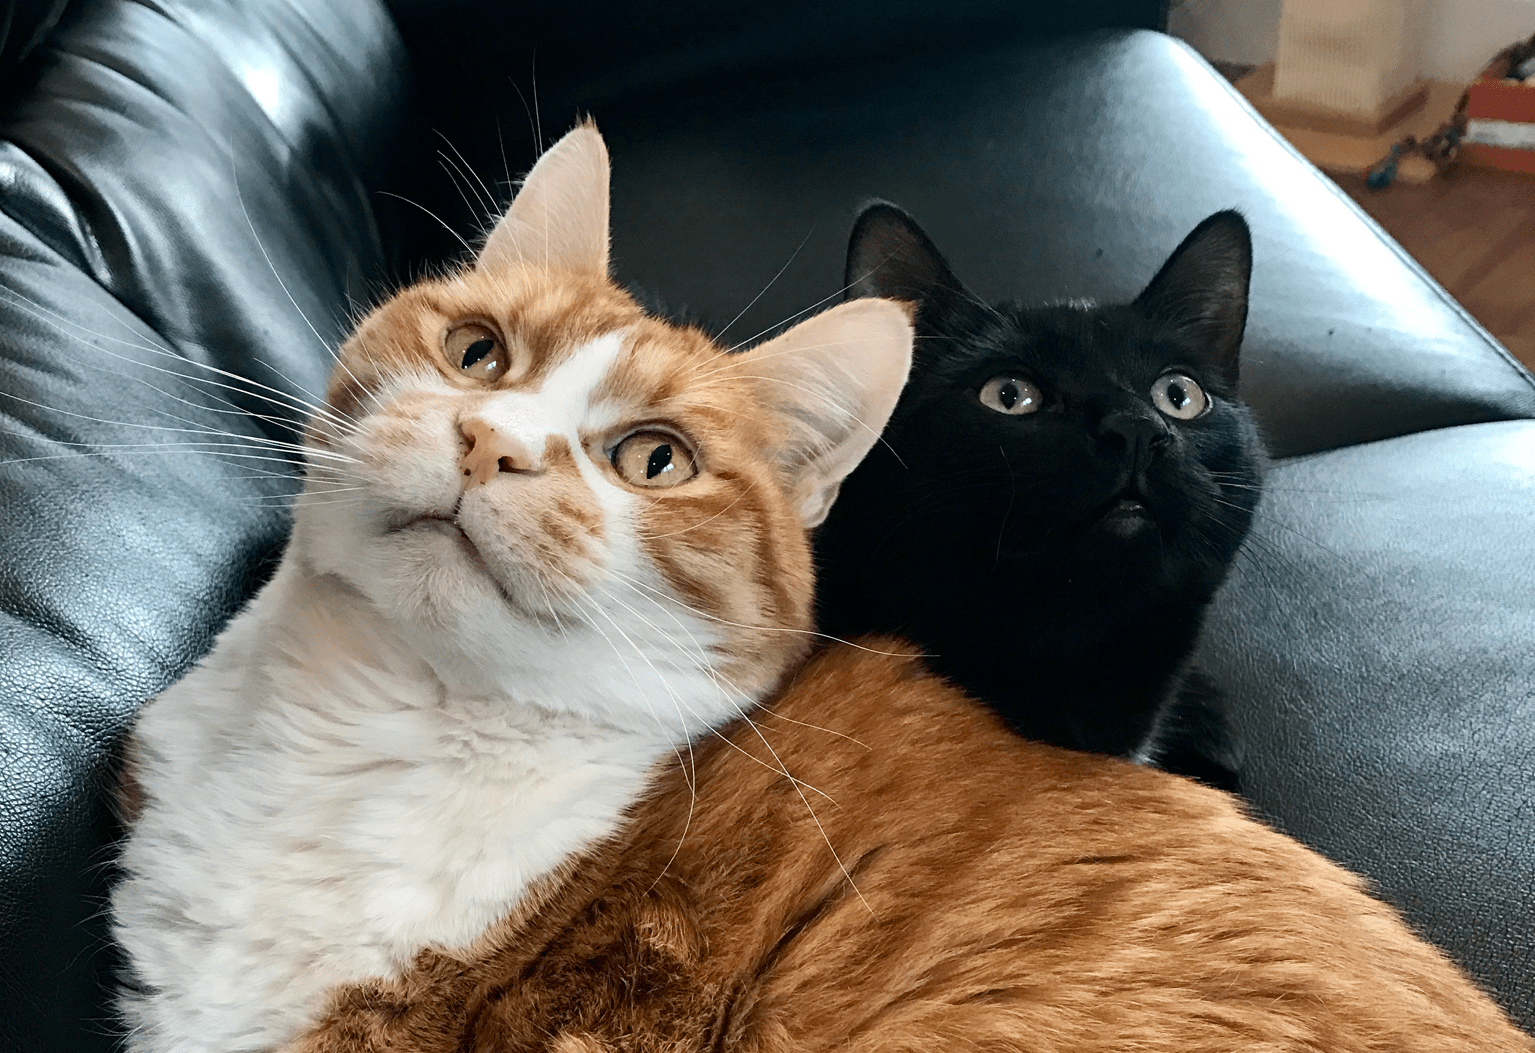 Mister and Smokes beat the odds, and now they're the best of friends, living with their hoomans. Get to know them in this week's Frisky Feline Feature.